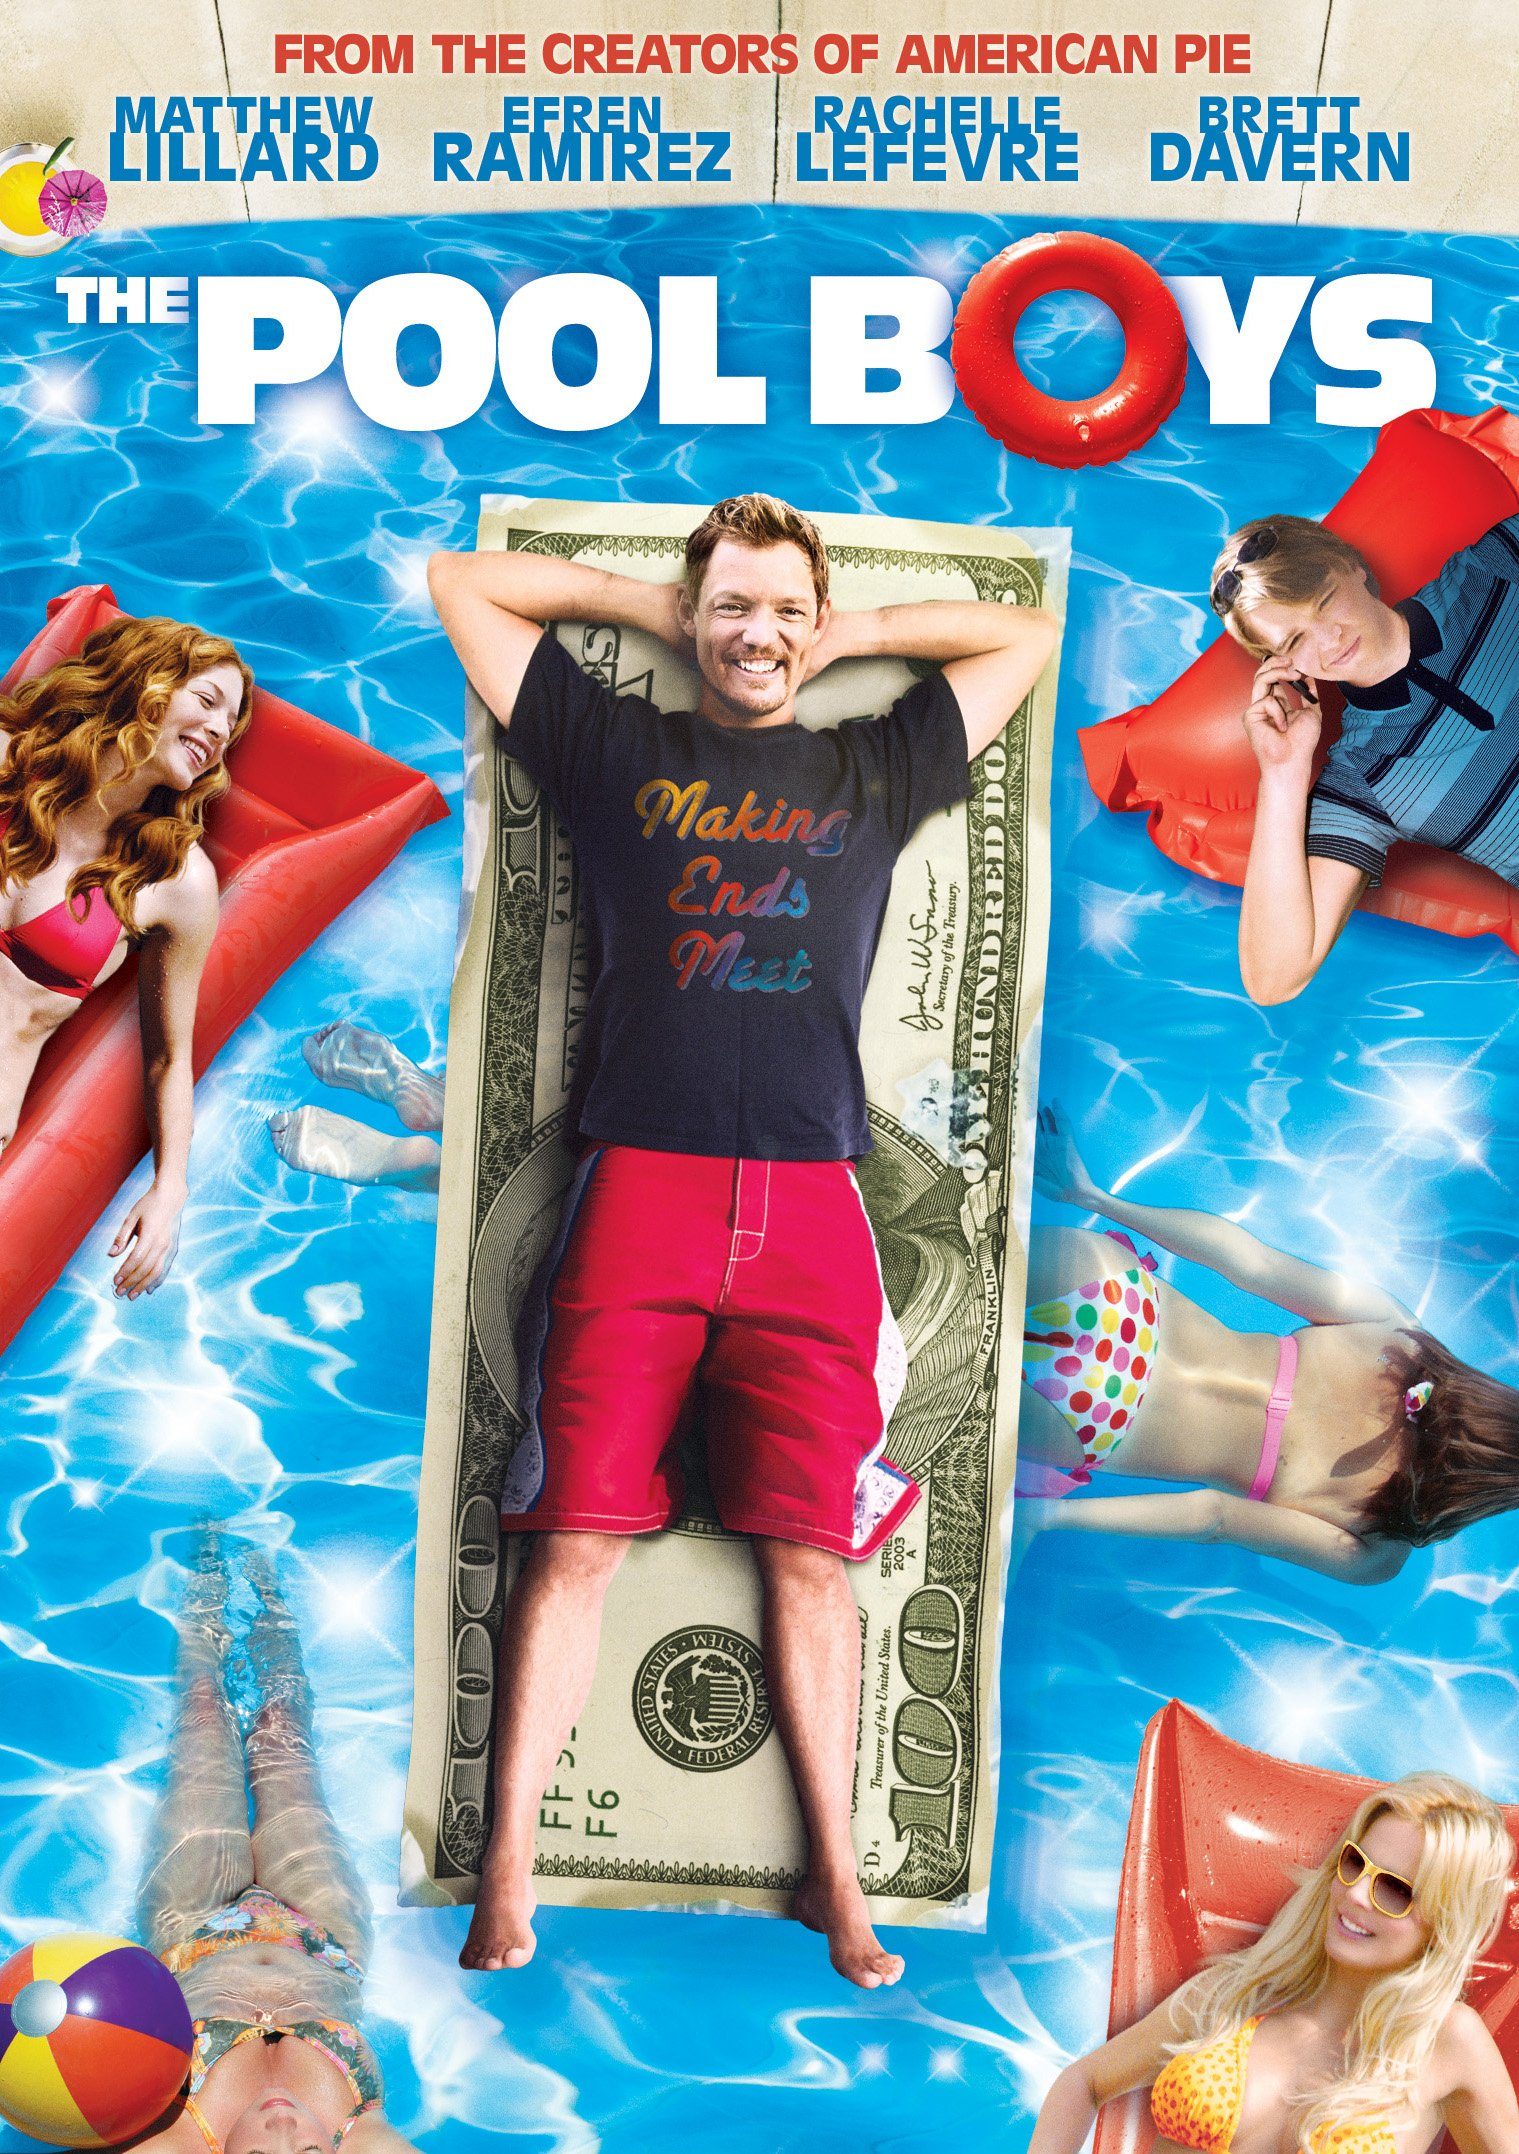 DVD : Matthew Lillard - The Pool Boys (Widescreen, Dolby, AC-3, Subtitled)